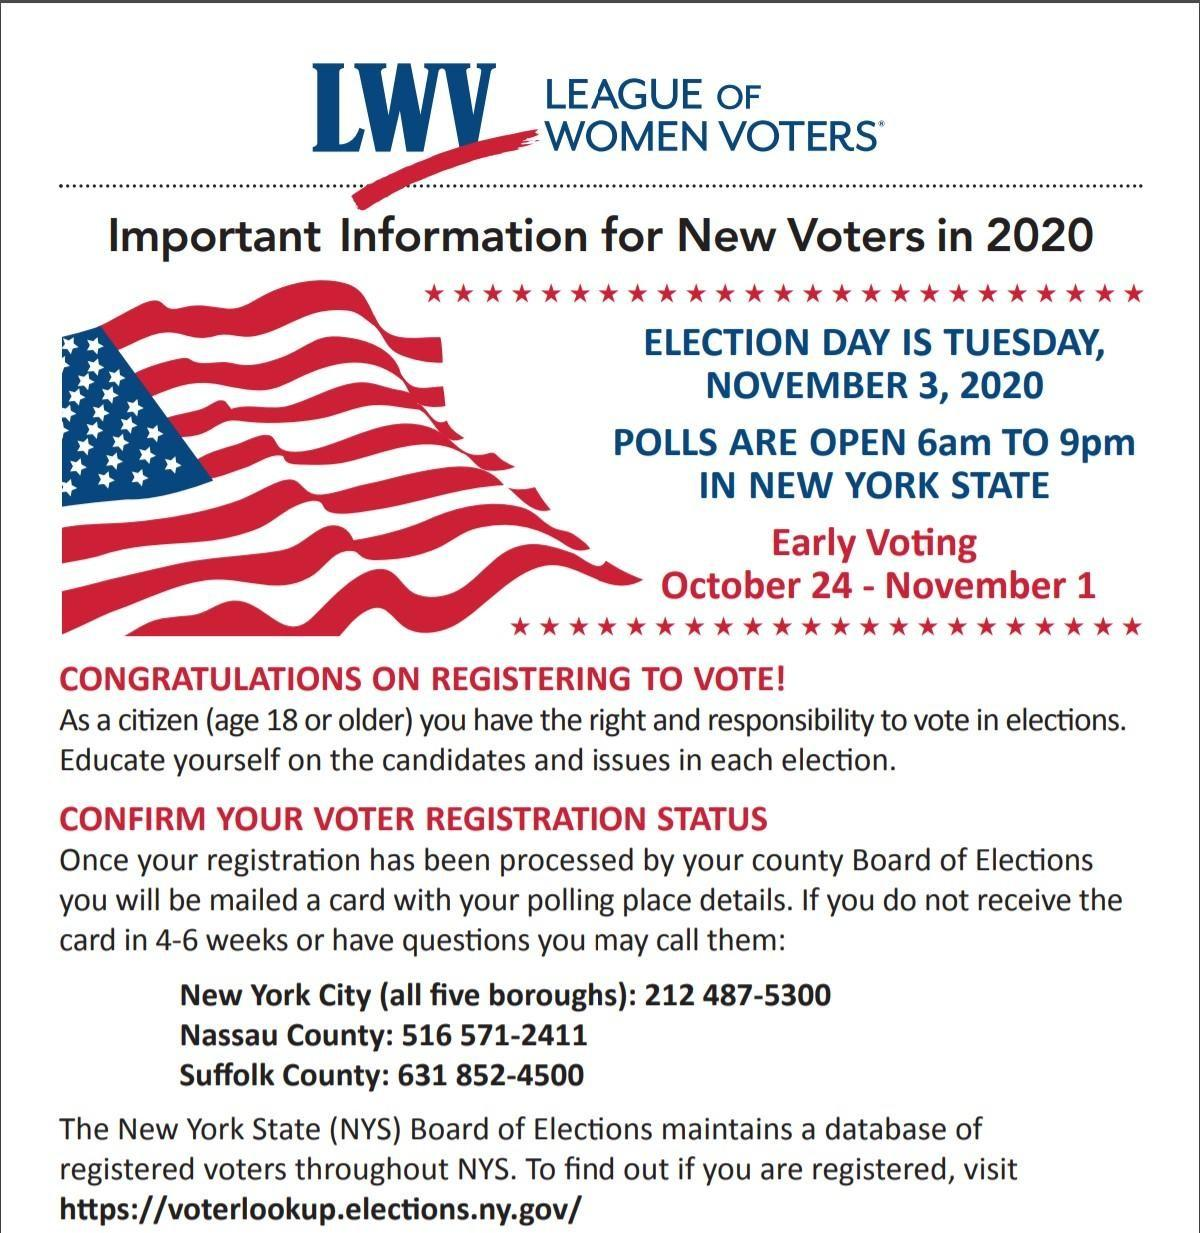 Important Information for New Voters in 2020